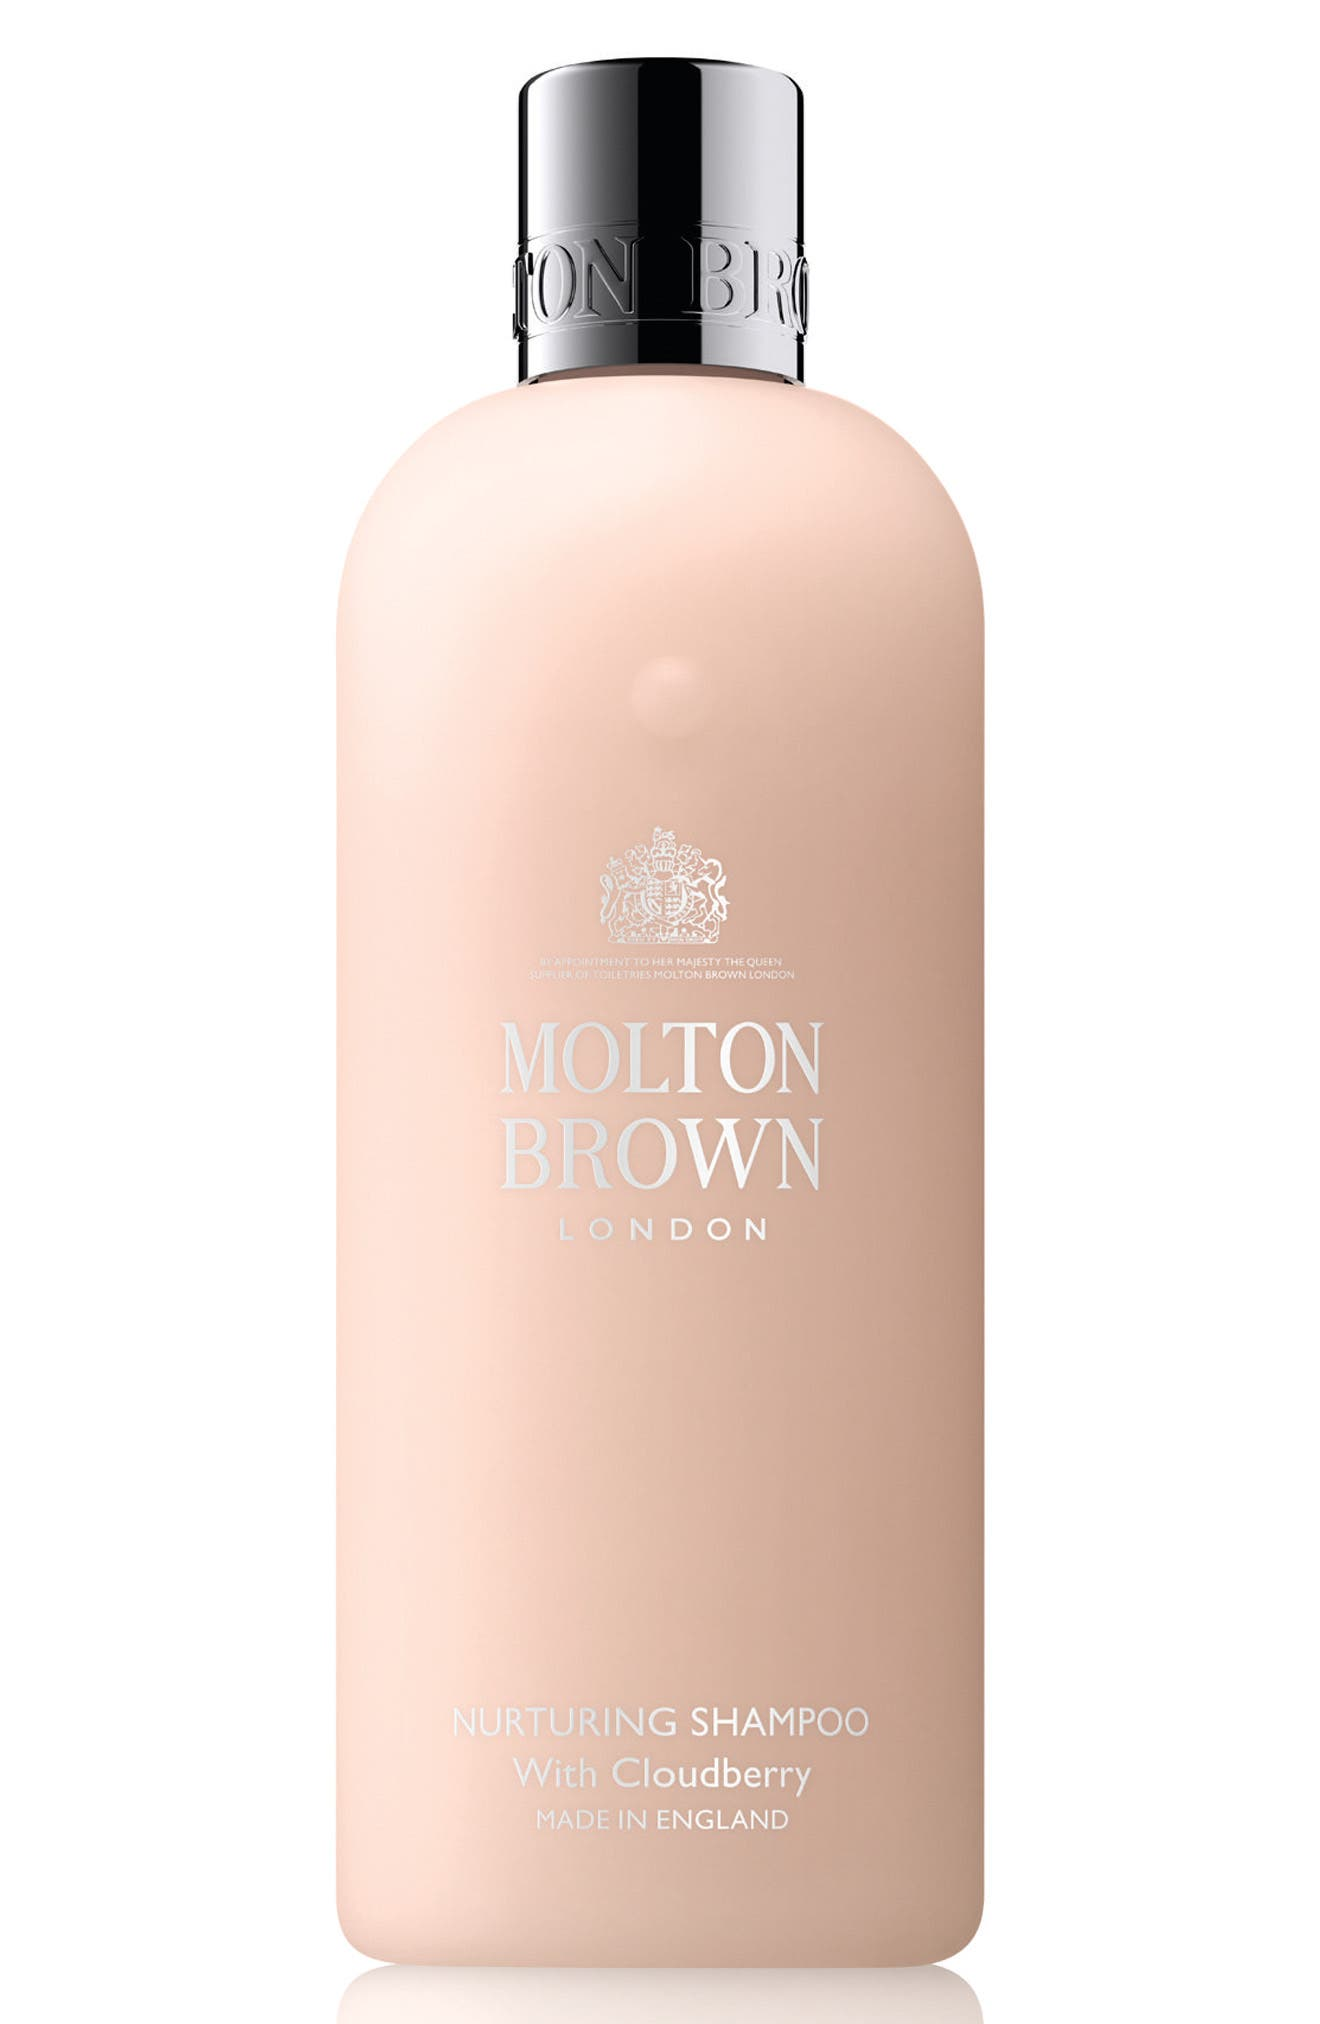 MOLTON BROWN London Nurturing Shampoo with Cloudberry